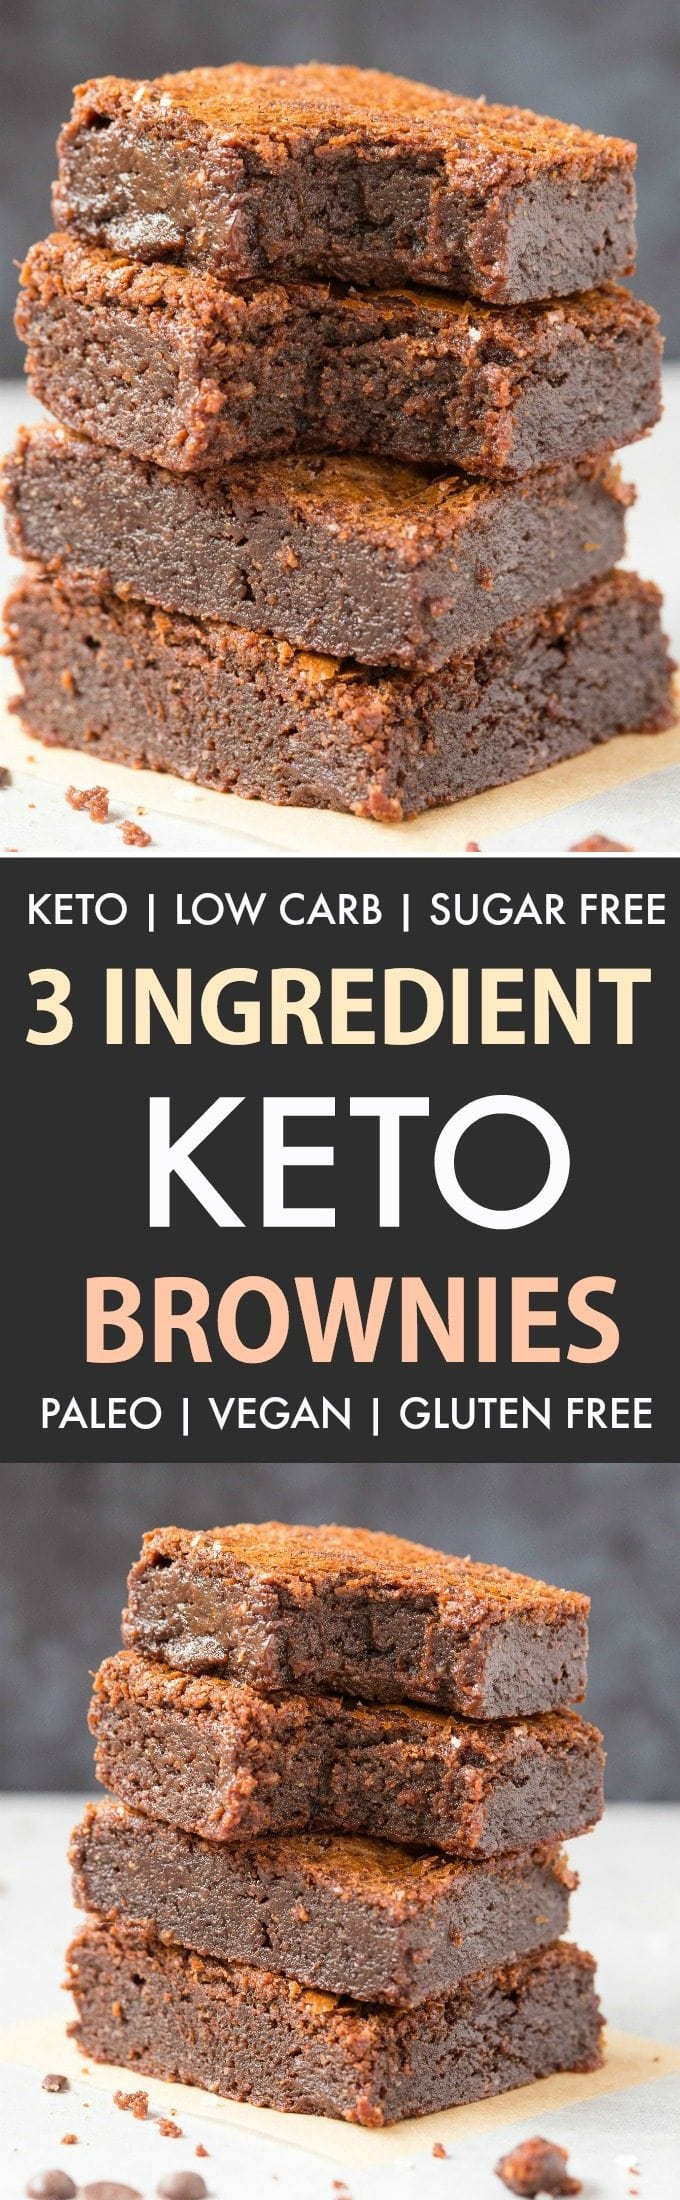 Easy 3-Ingredient Keto Low Carb brownies (Paleo, Vegan, Sugar Free)- Super fudgy, gooey and needing just three ingredients. Made with almond flour, these healthy brownies are better than any boxed mix! #ketodessert #ketorecipe #brownies #recipe #foodblogger #paleo #lowcarb | Recipe on thebigmansworld.com